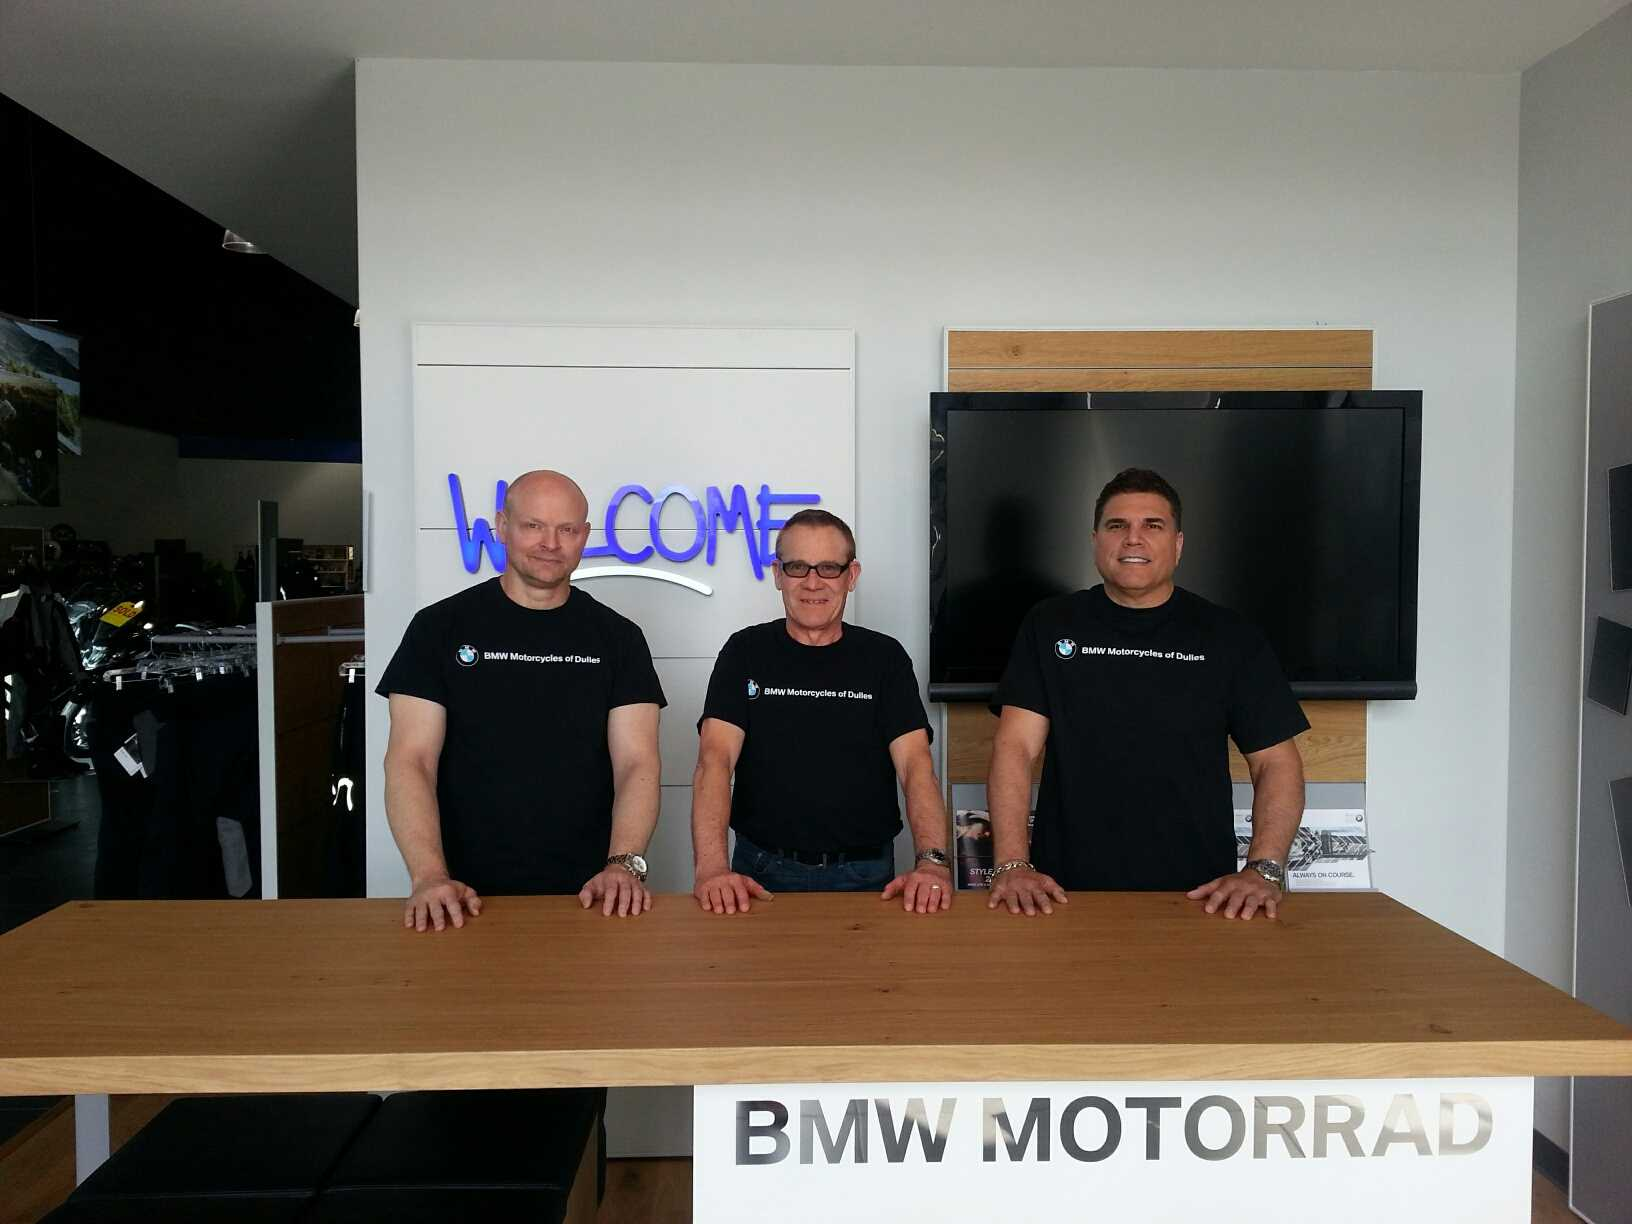 bmw dulles motorcycles